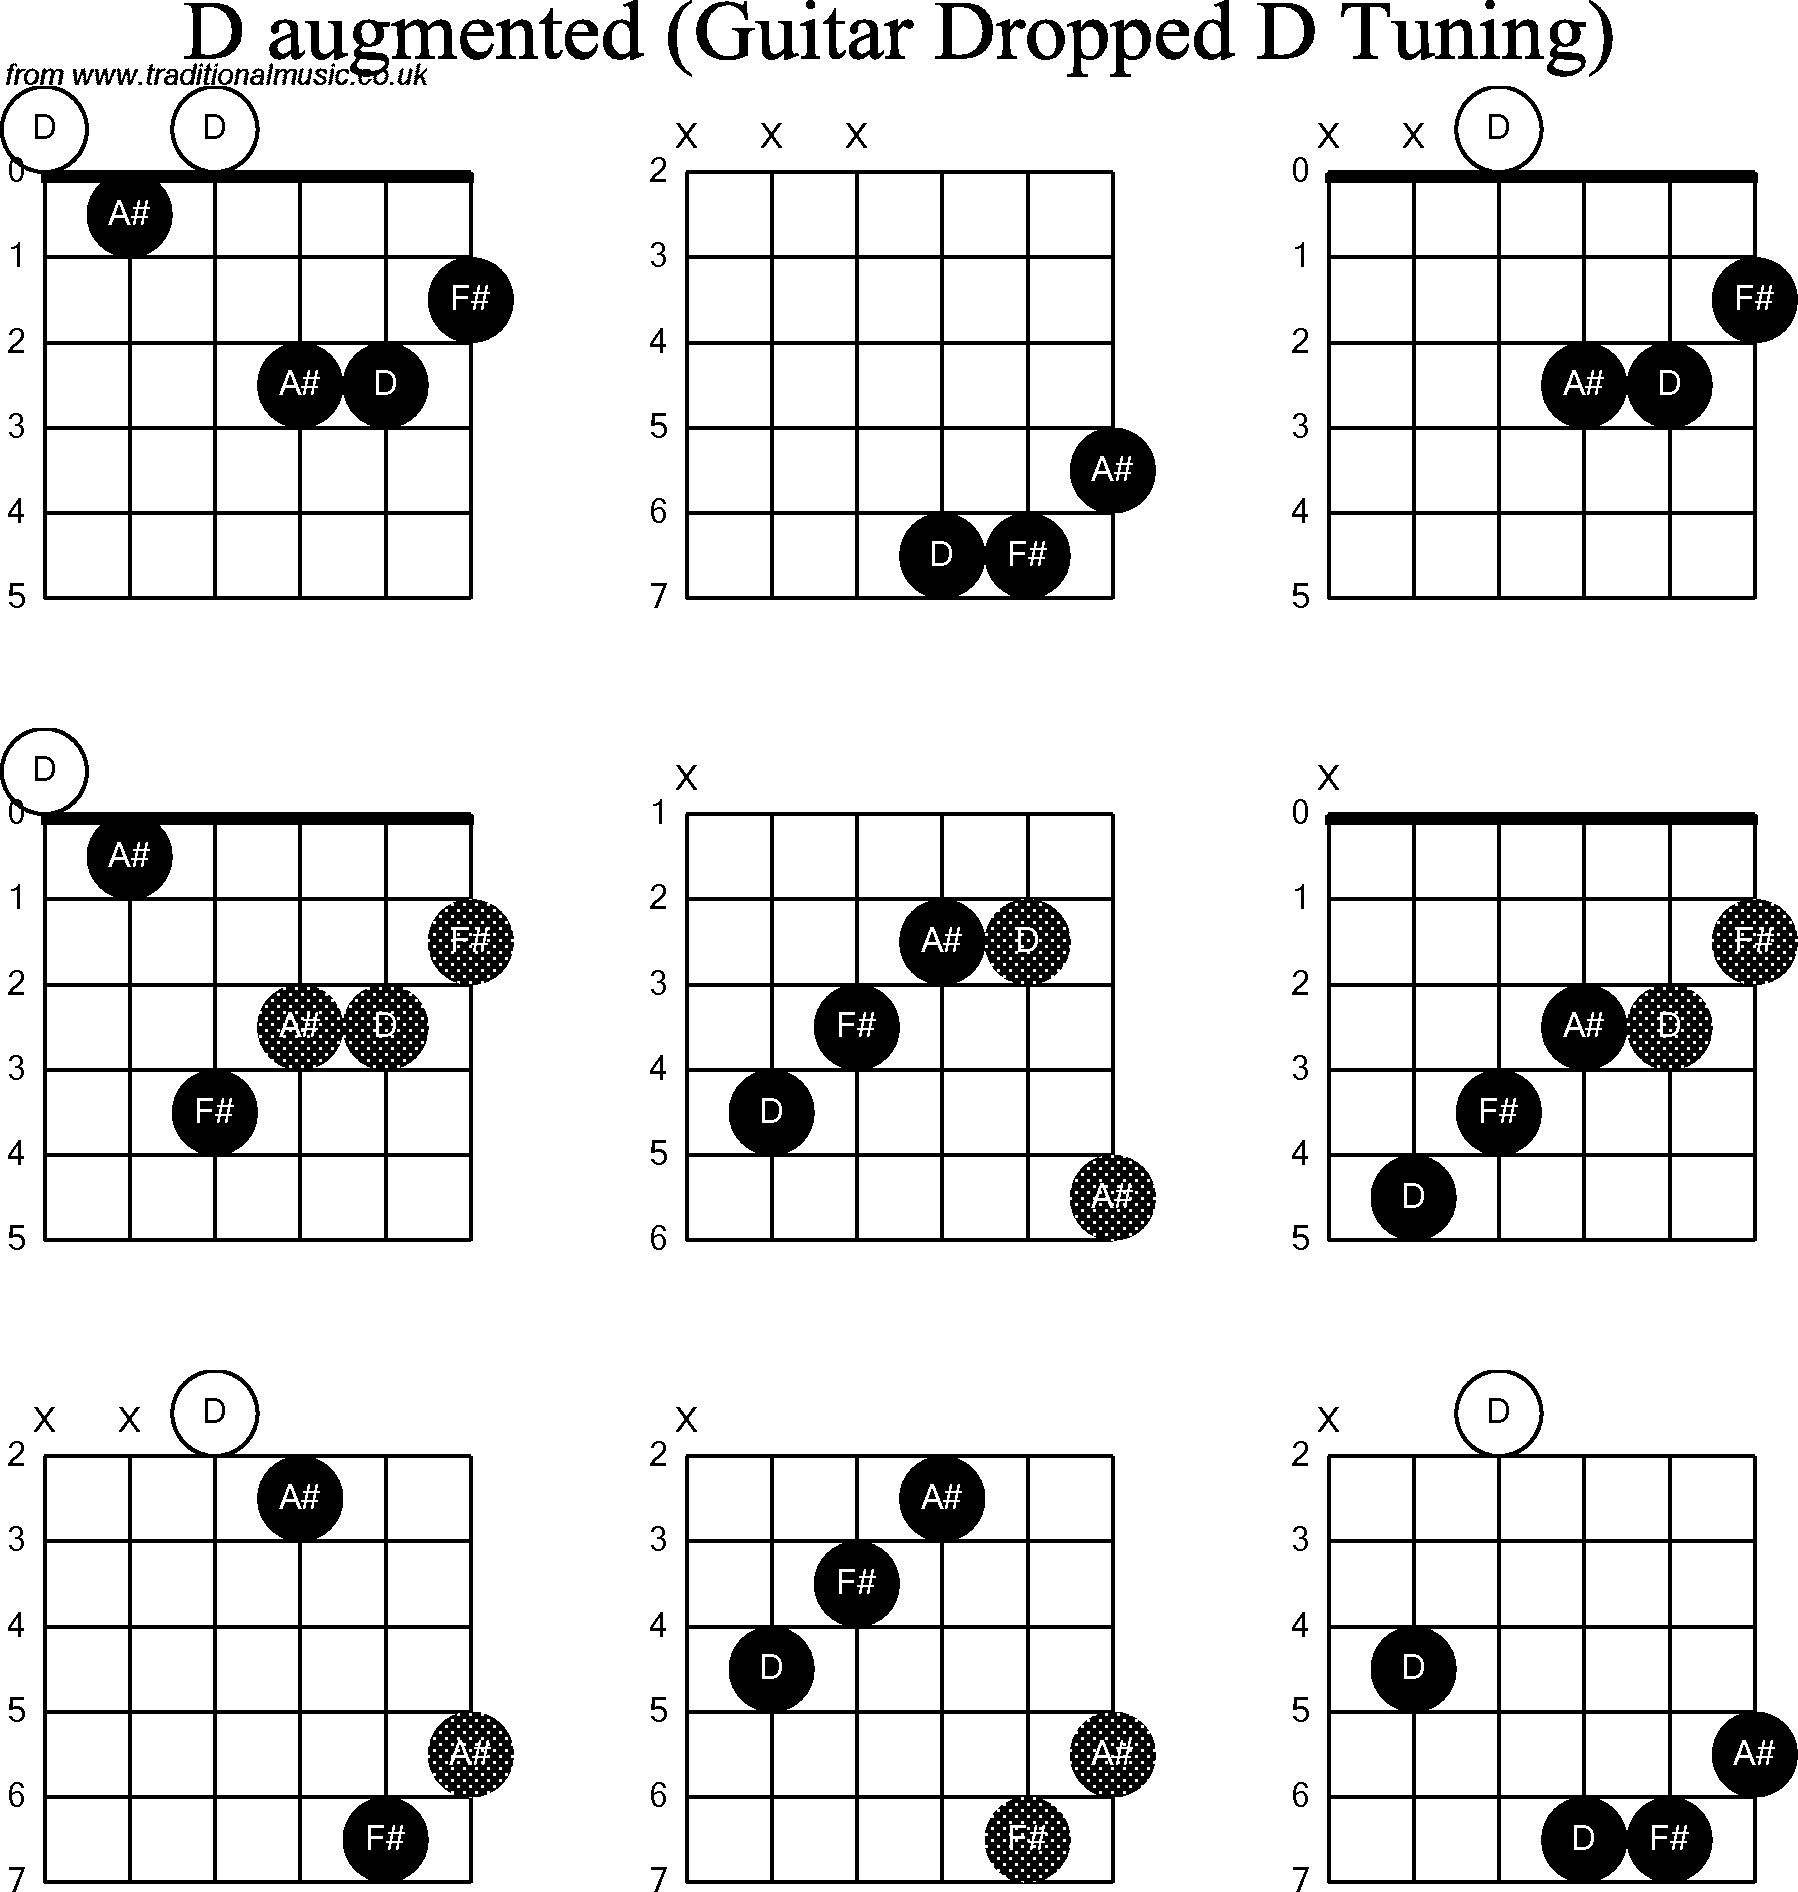 Chord Diagrams For Dropped D Guitardadgbe D Augmented